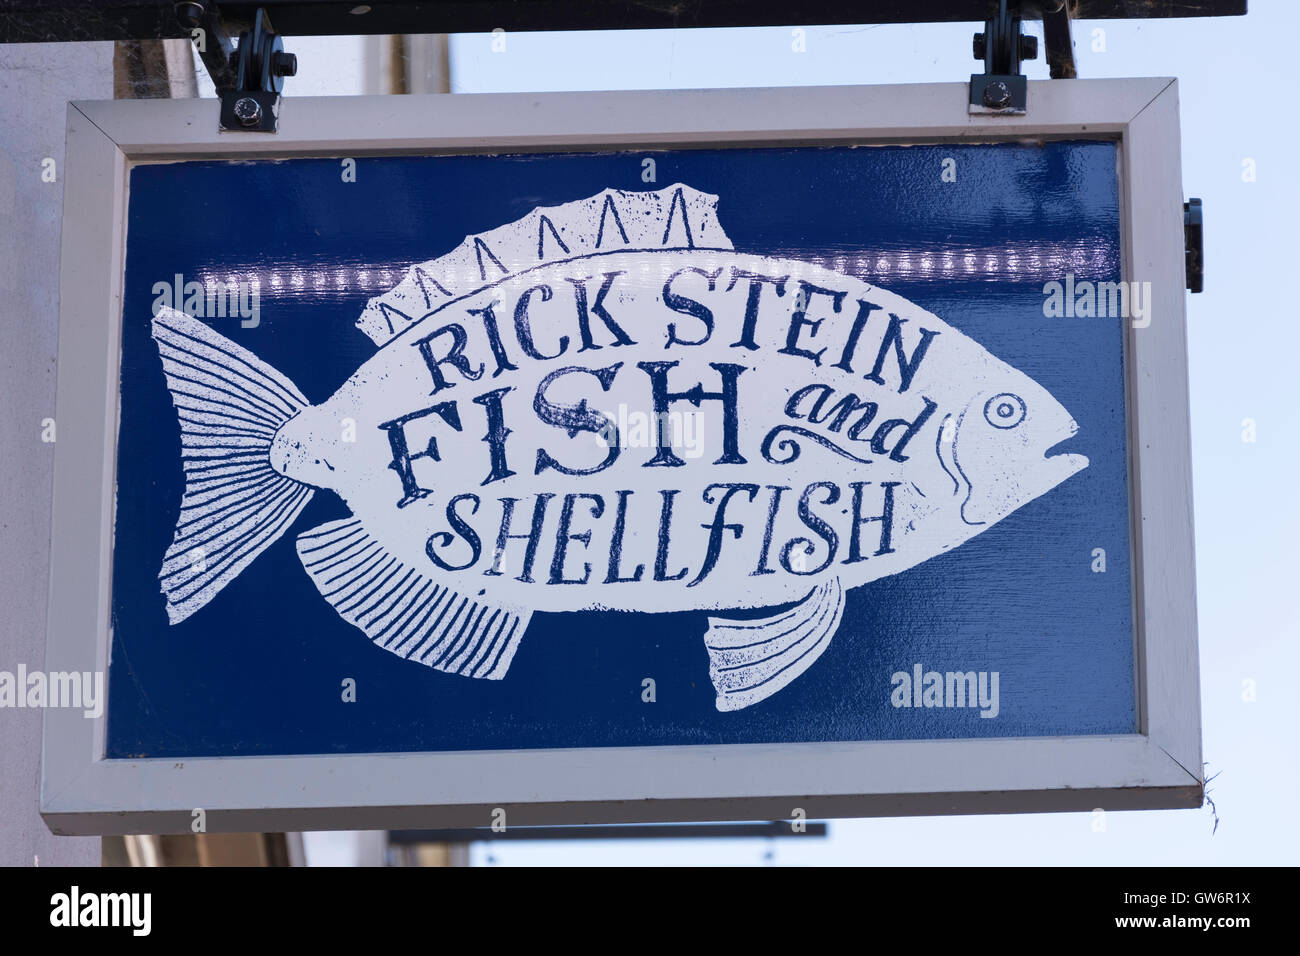 Rick Stein seafood restaurant sign, High Street, Winchester, Hampshire, England, United Kingdom - Stock Image